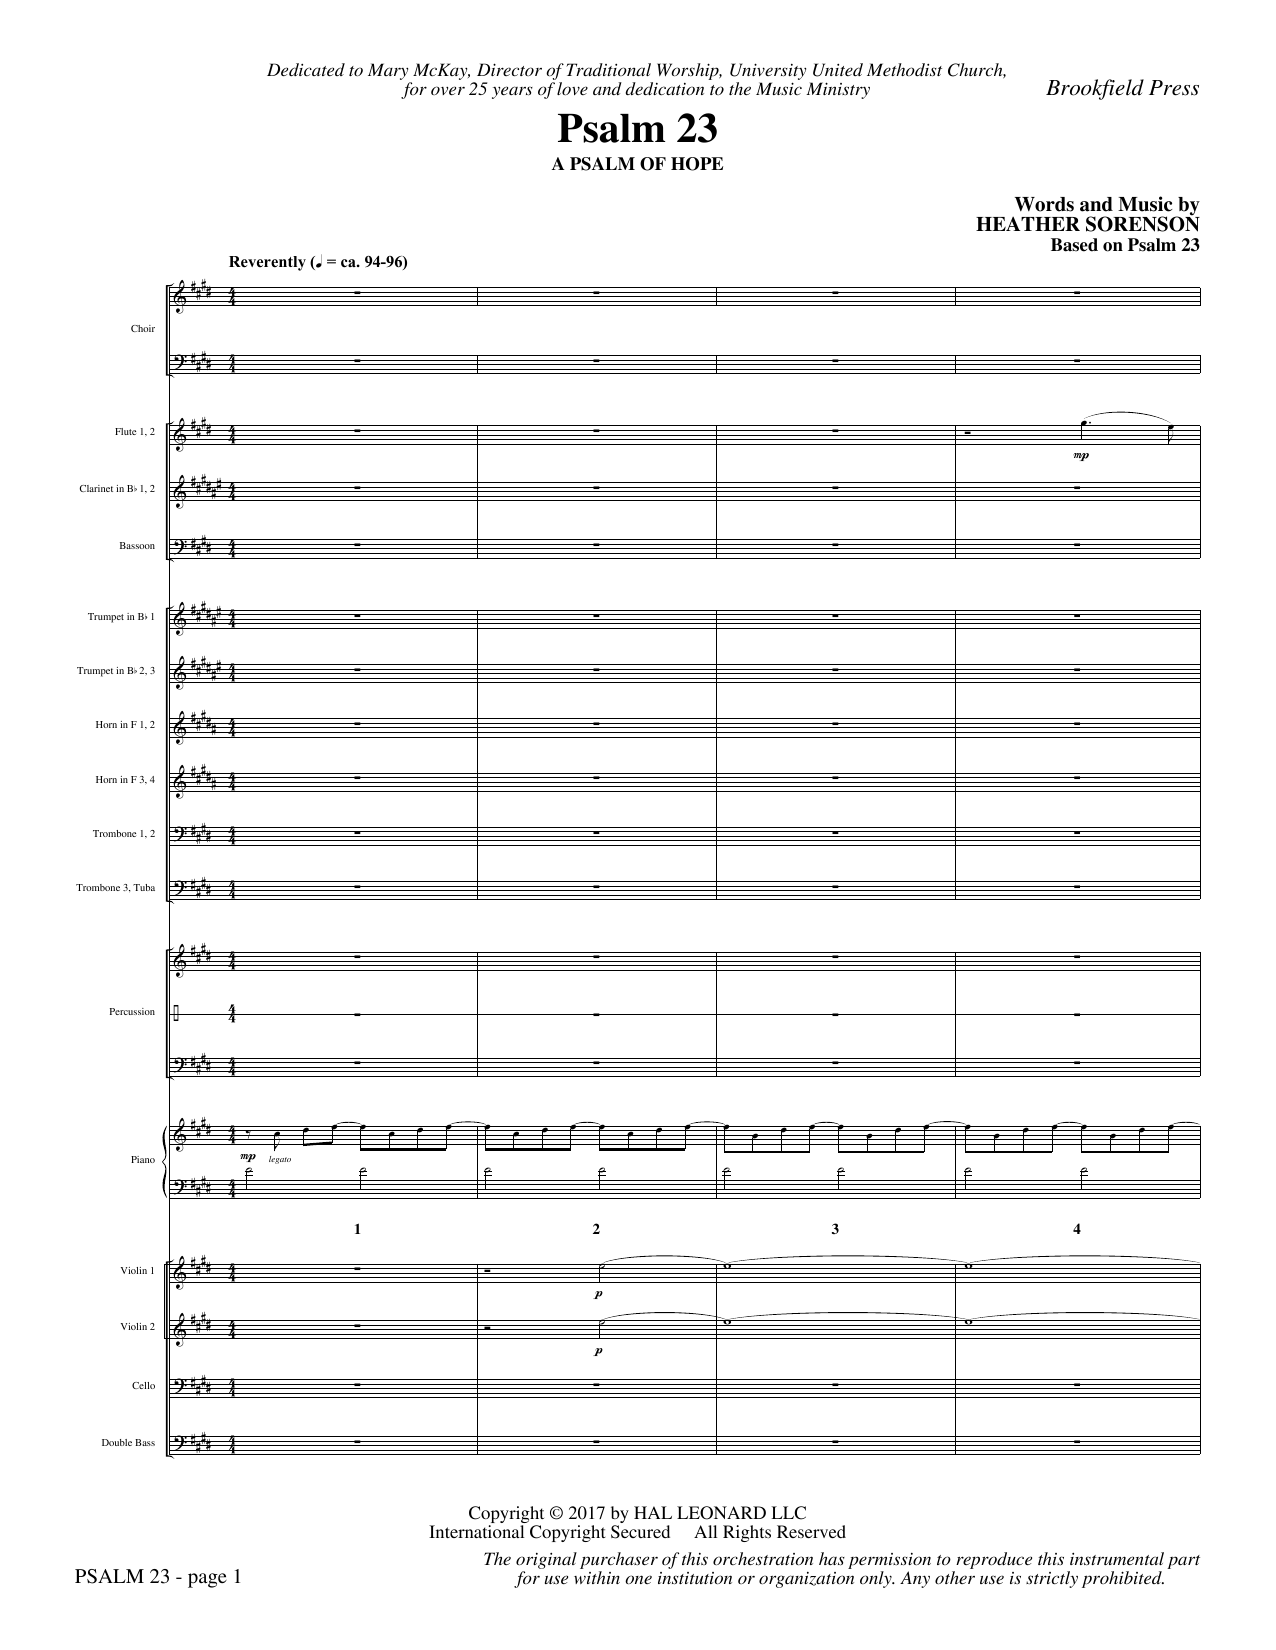 Psalm 23 (COMPLETE) sheet music for orchestra/band by Heather Sorenson and Based on Psalm 23. Score Image Preview.